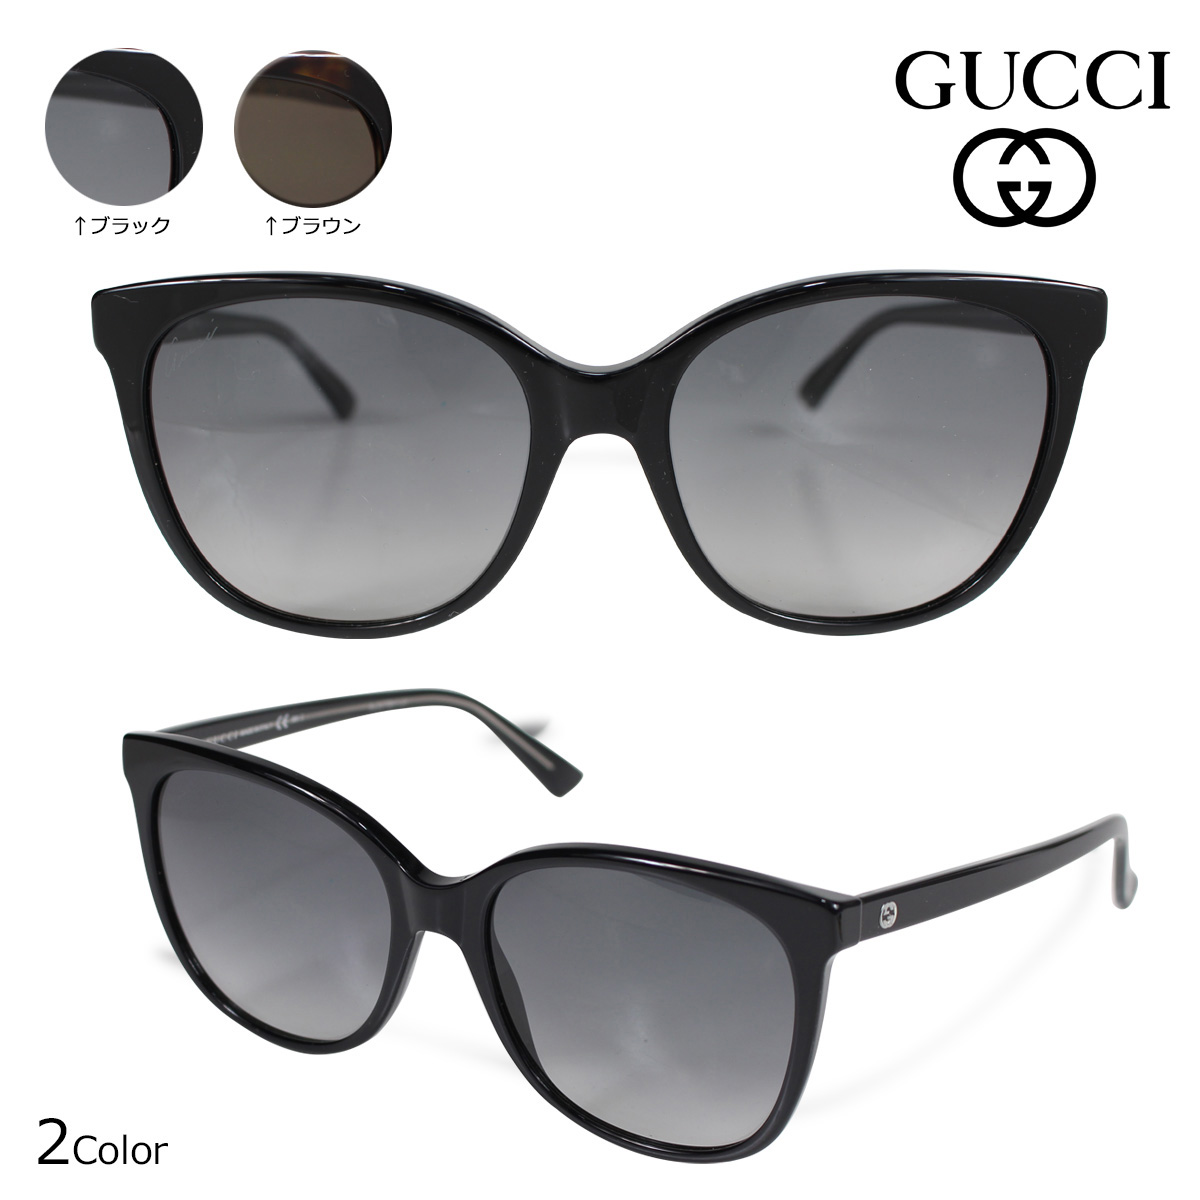 83cb2e00ea It is the brand which Gucci puts the name of the designer to guarantee  quality for the first time